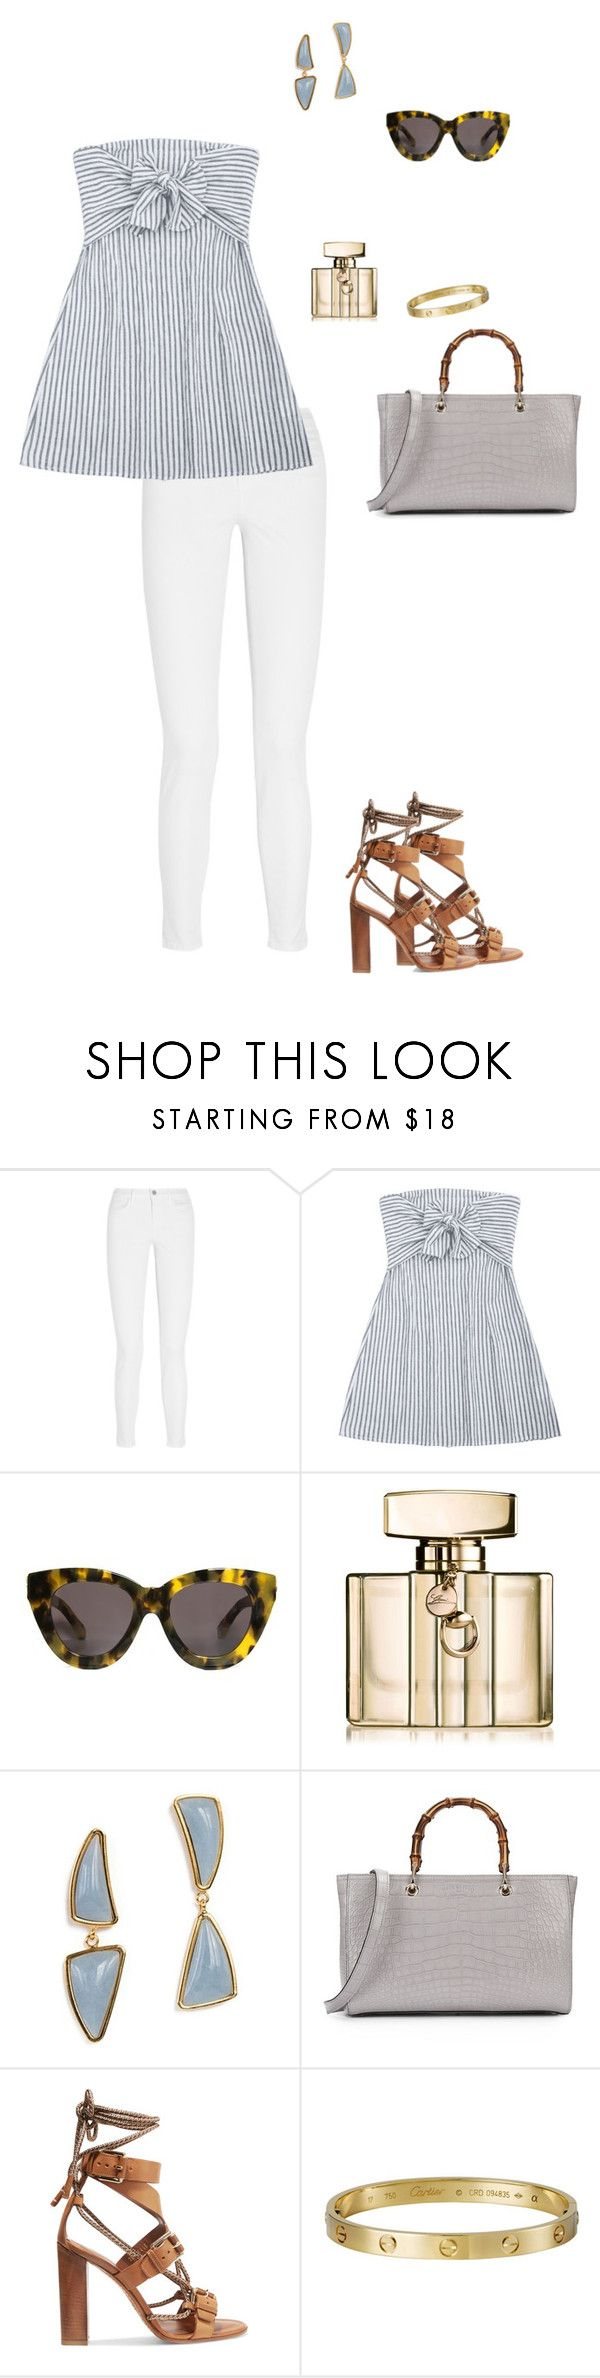 """Untitled #1985"" by nujixo ❤ liked on Polyvore featuring J Brand, Karen Walker, Gucci, Lizzie Fortunato, Etro and Cartier"